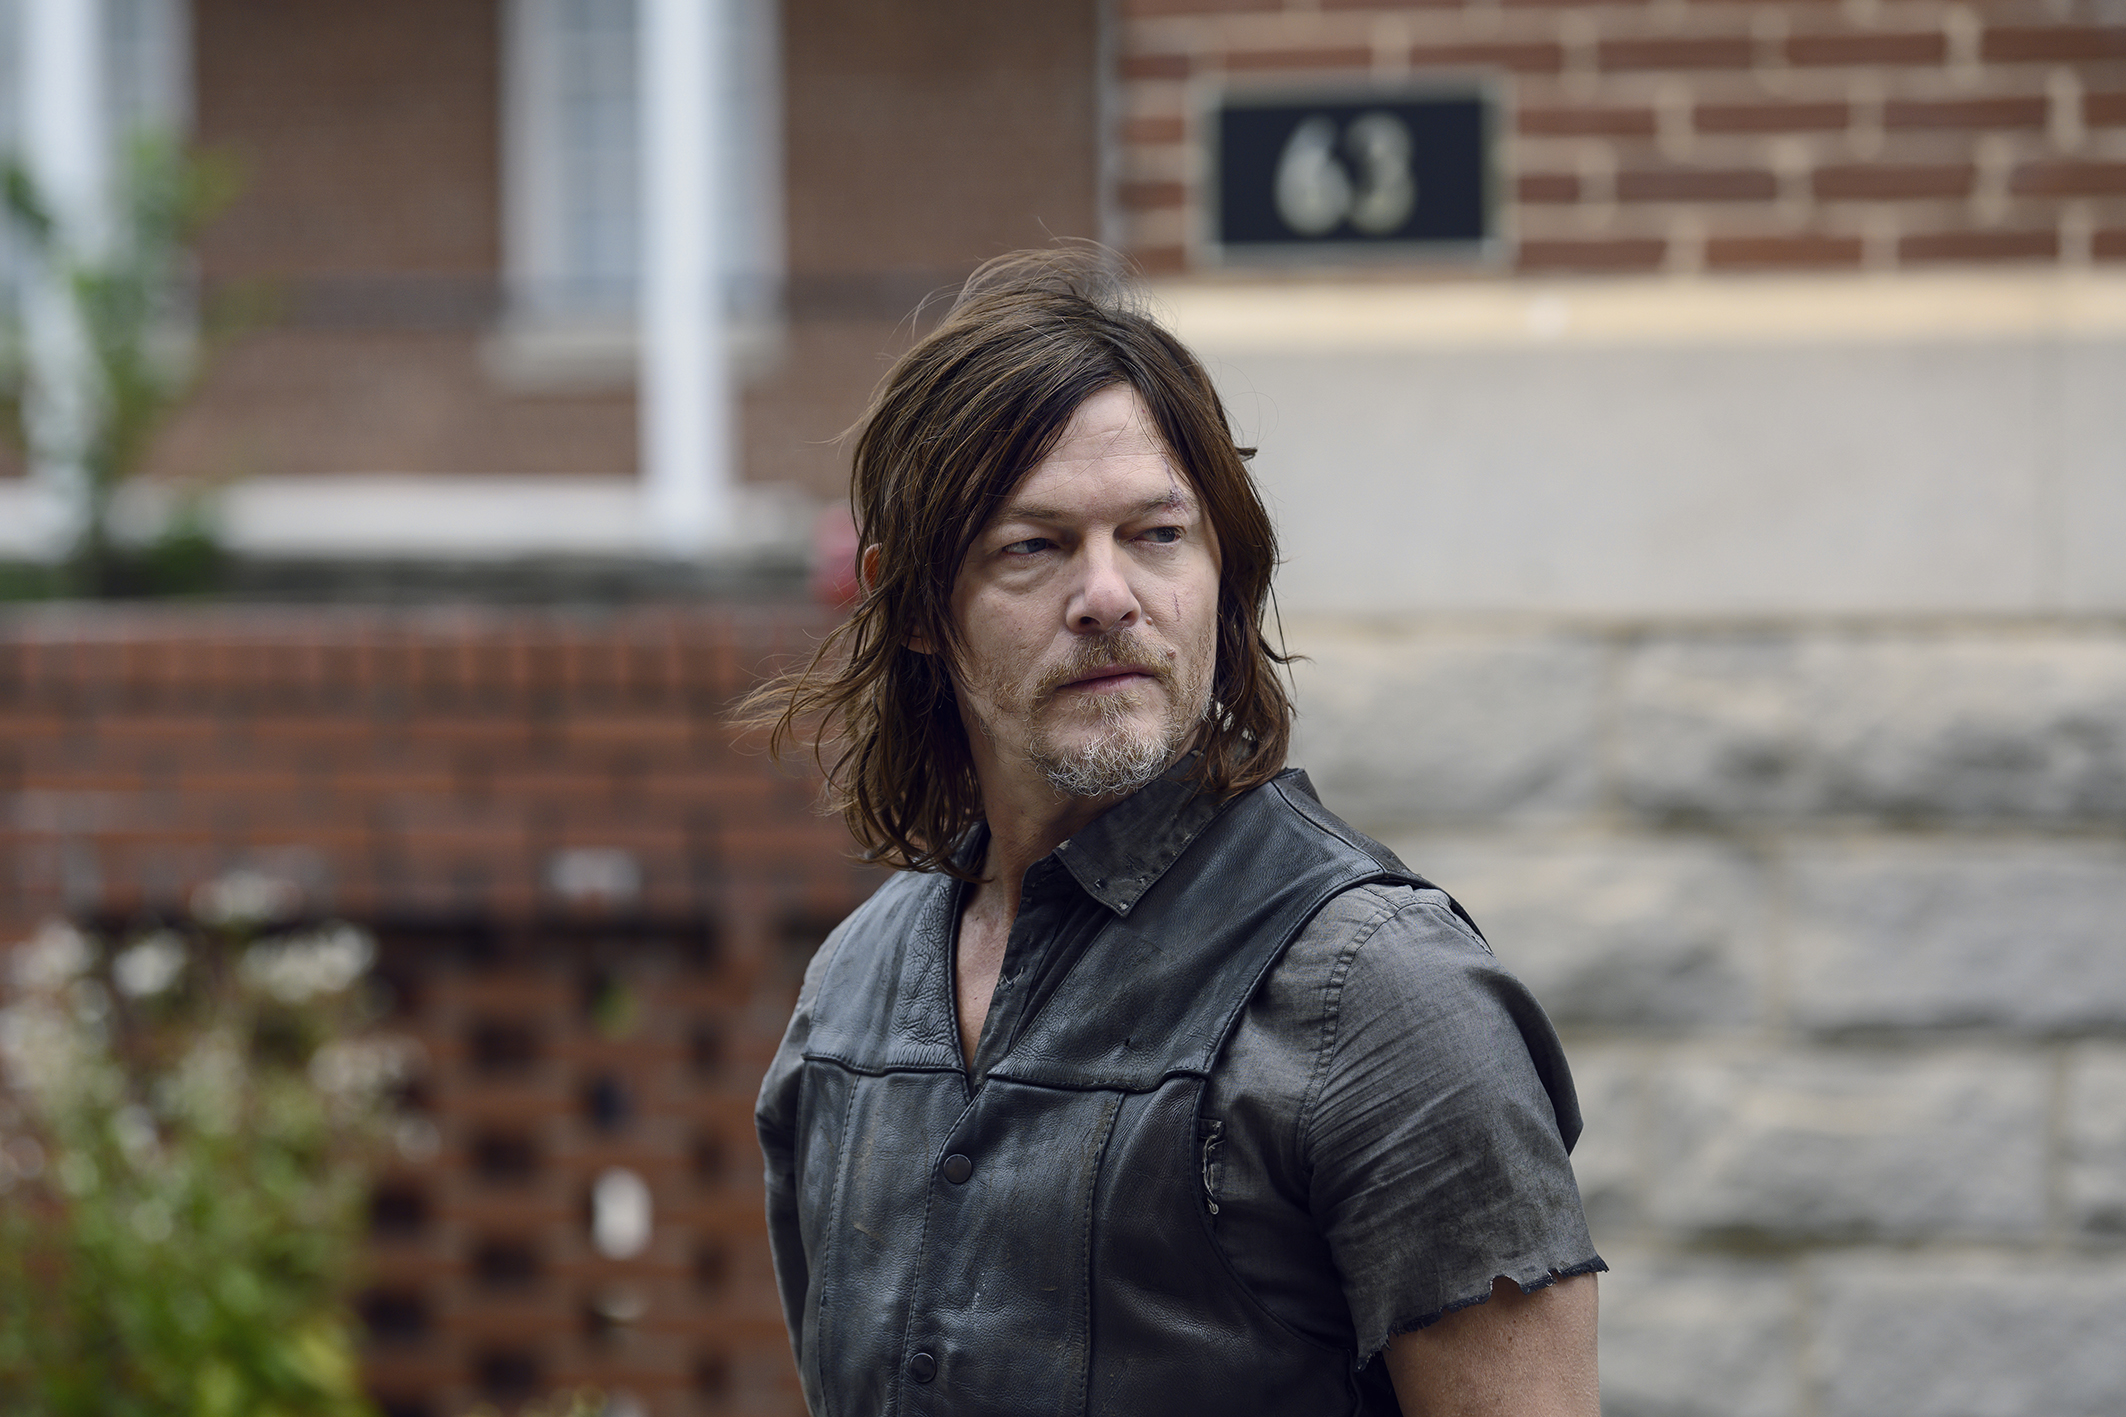 The Walking Dead showrunner teases 'closed end' to characters in season 9 finale